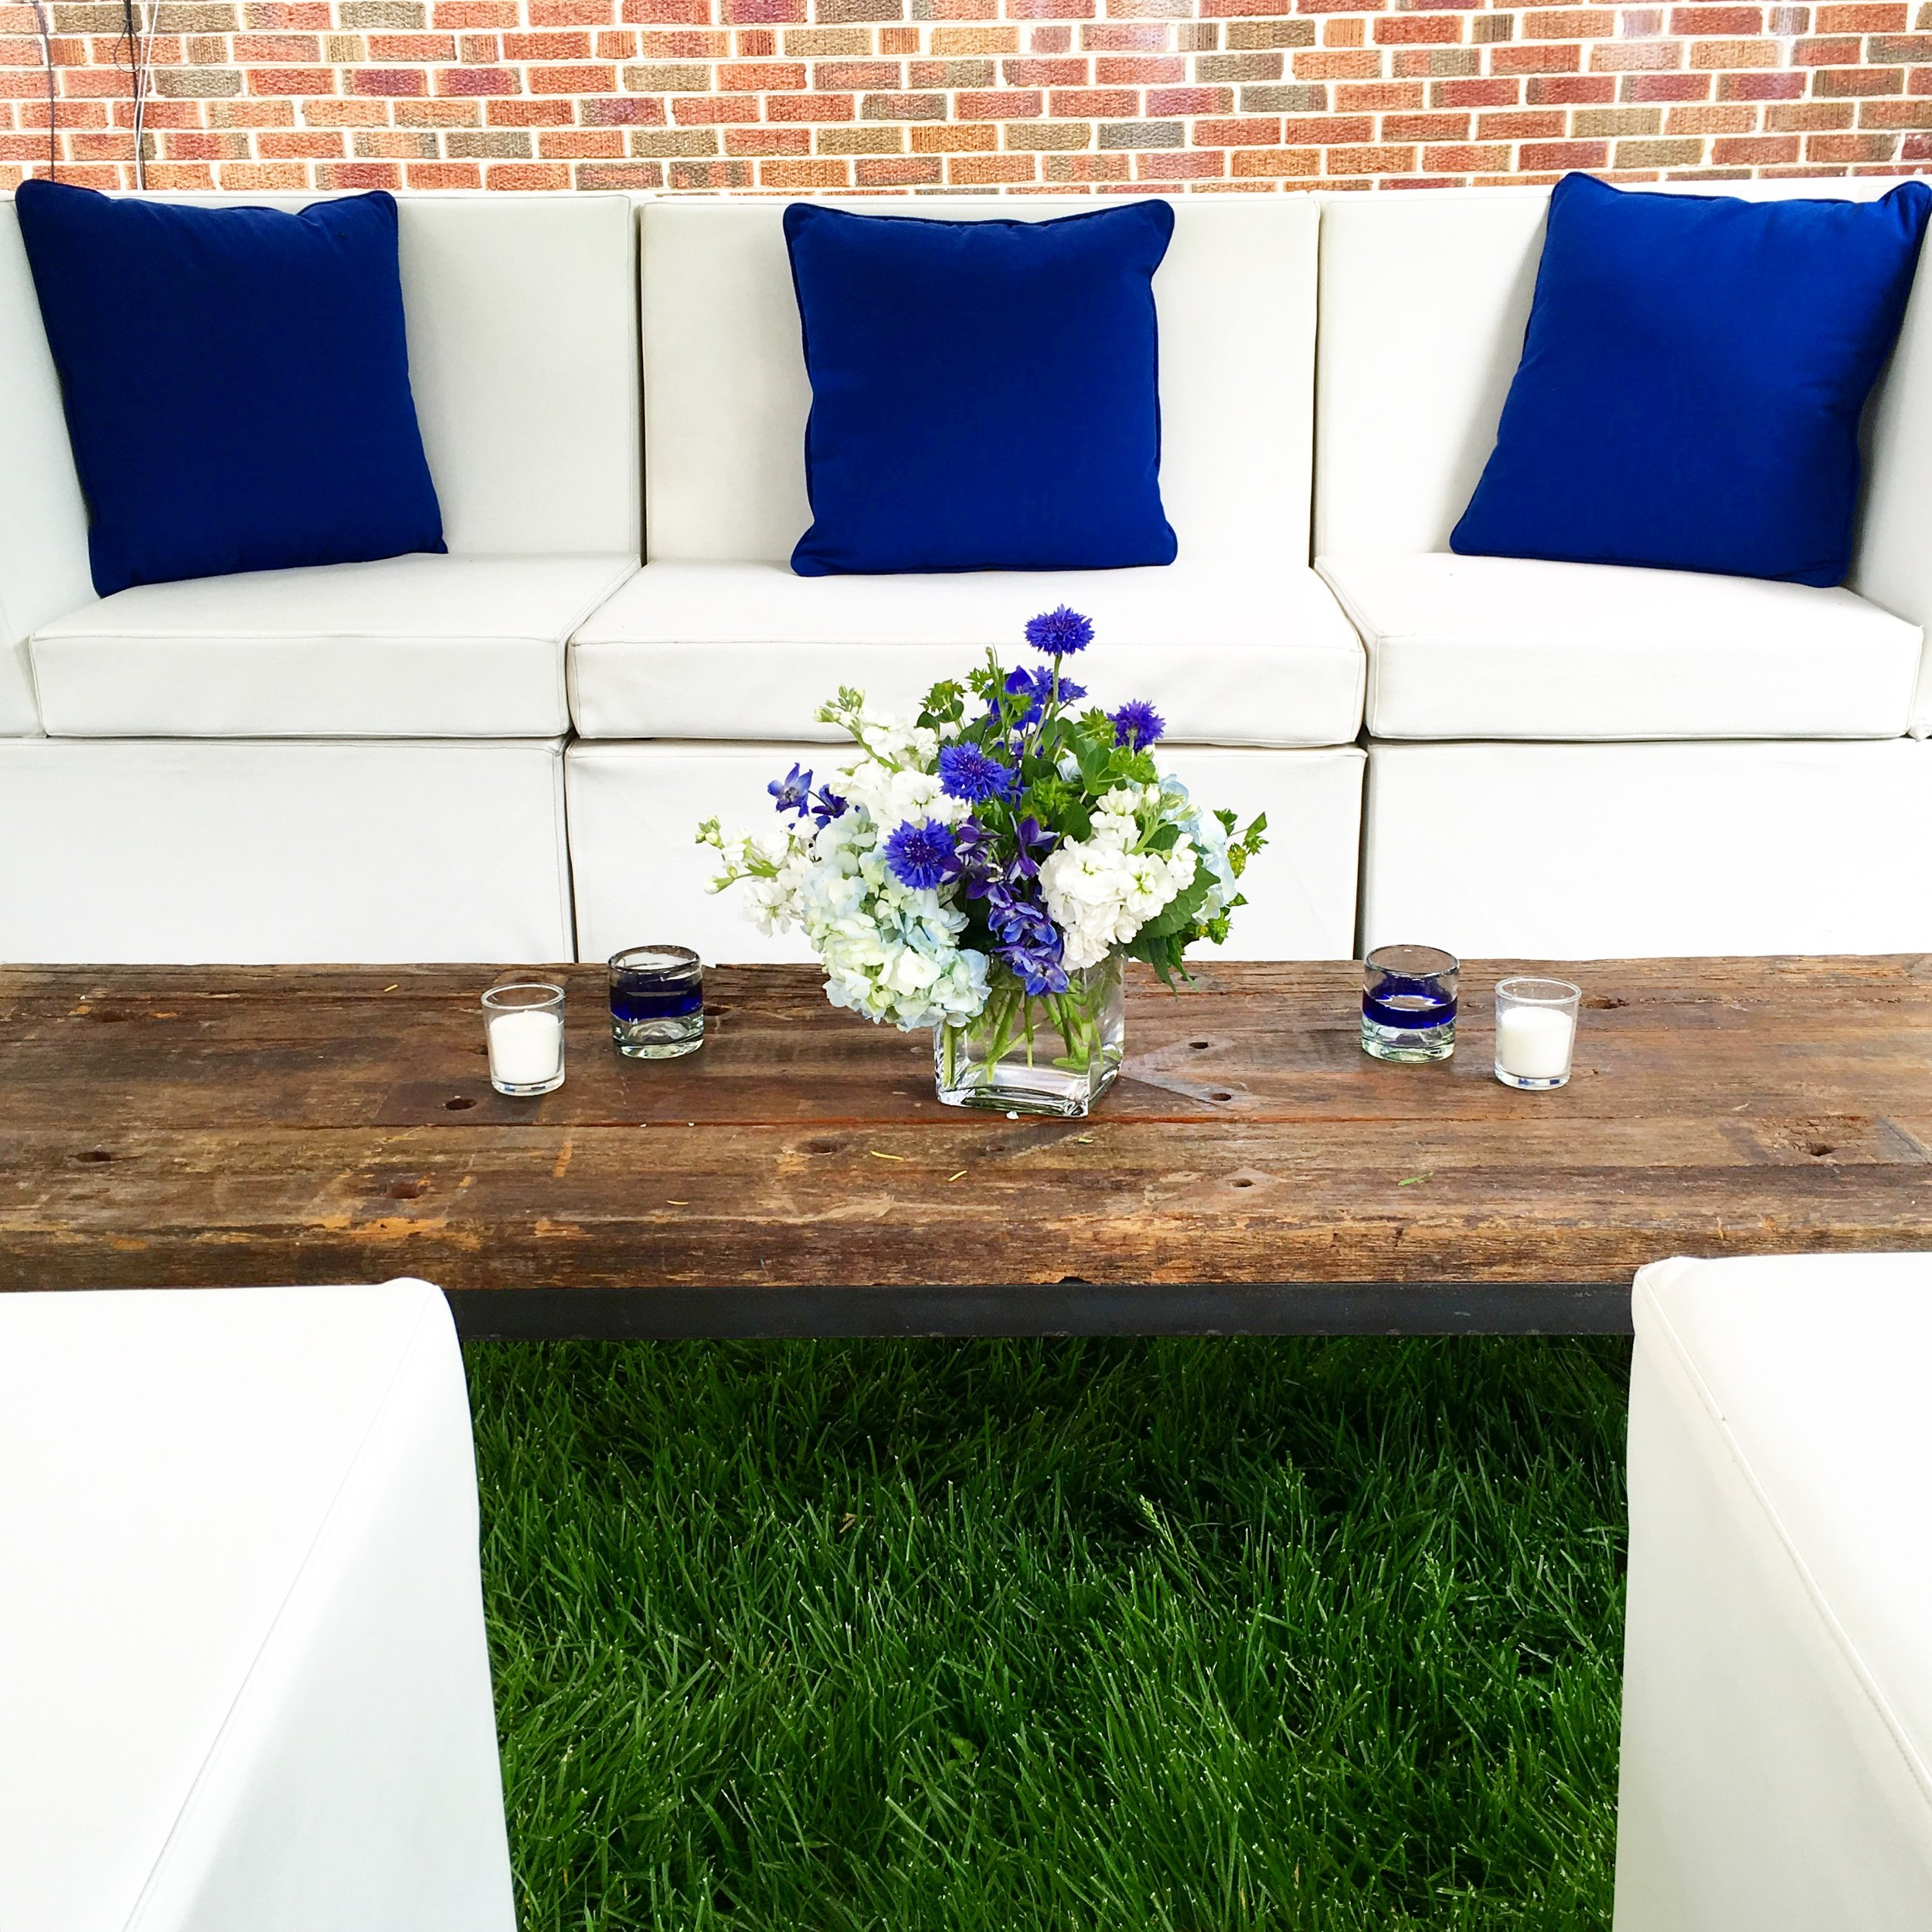 Backyard Graduation Party  Blue and White Party Decor  Planning by Wrap It Up Parties